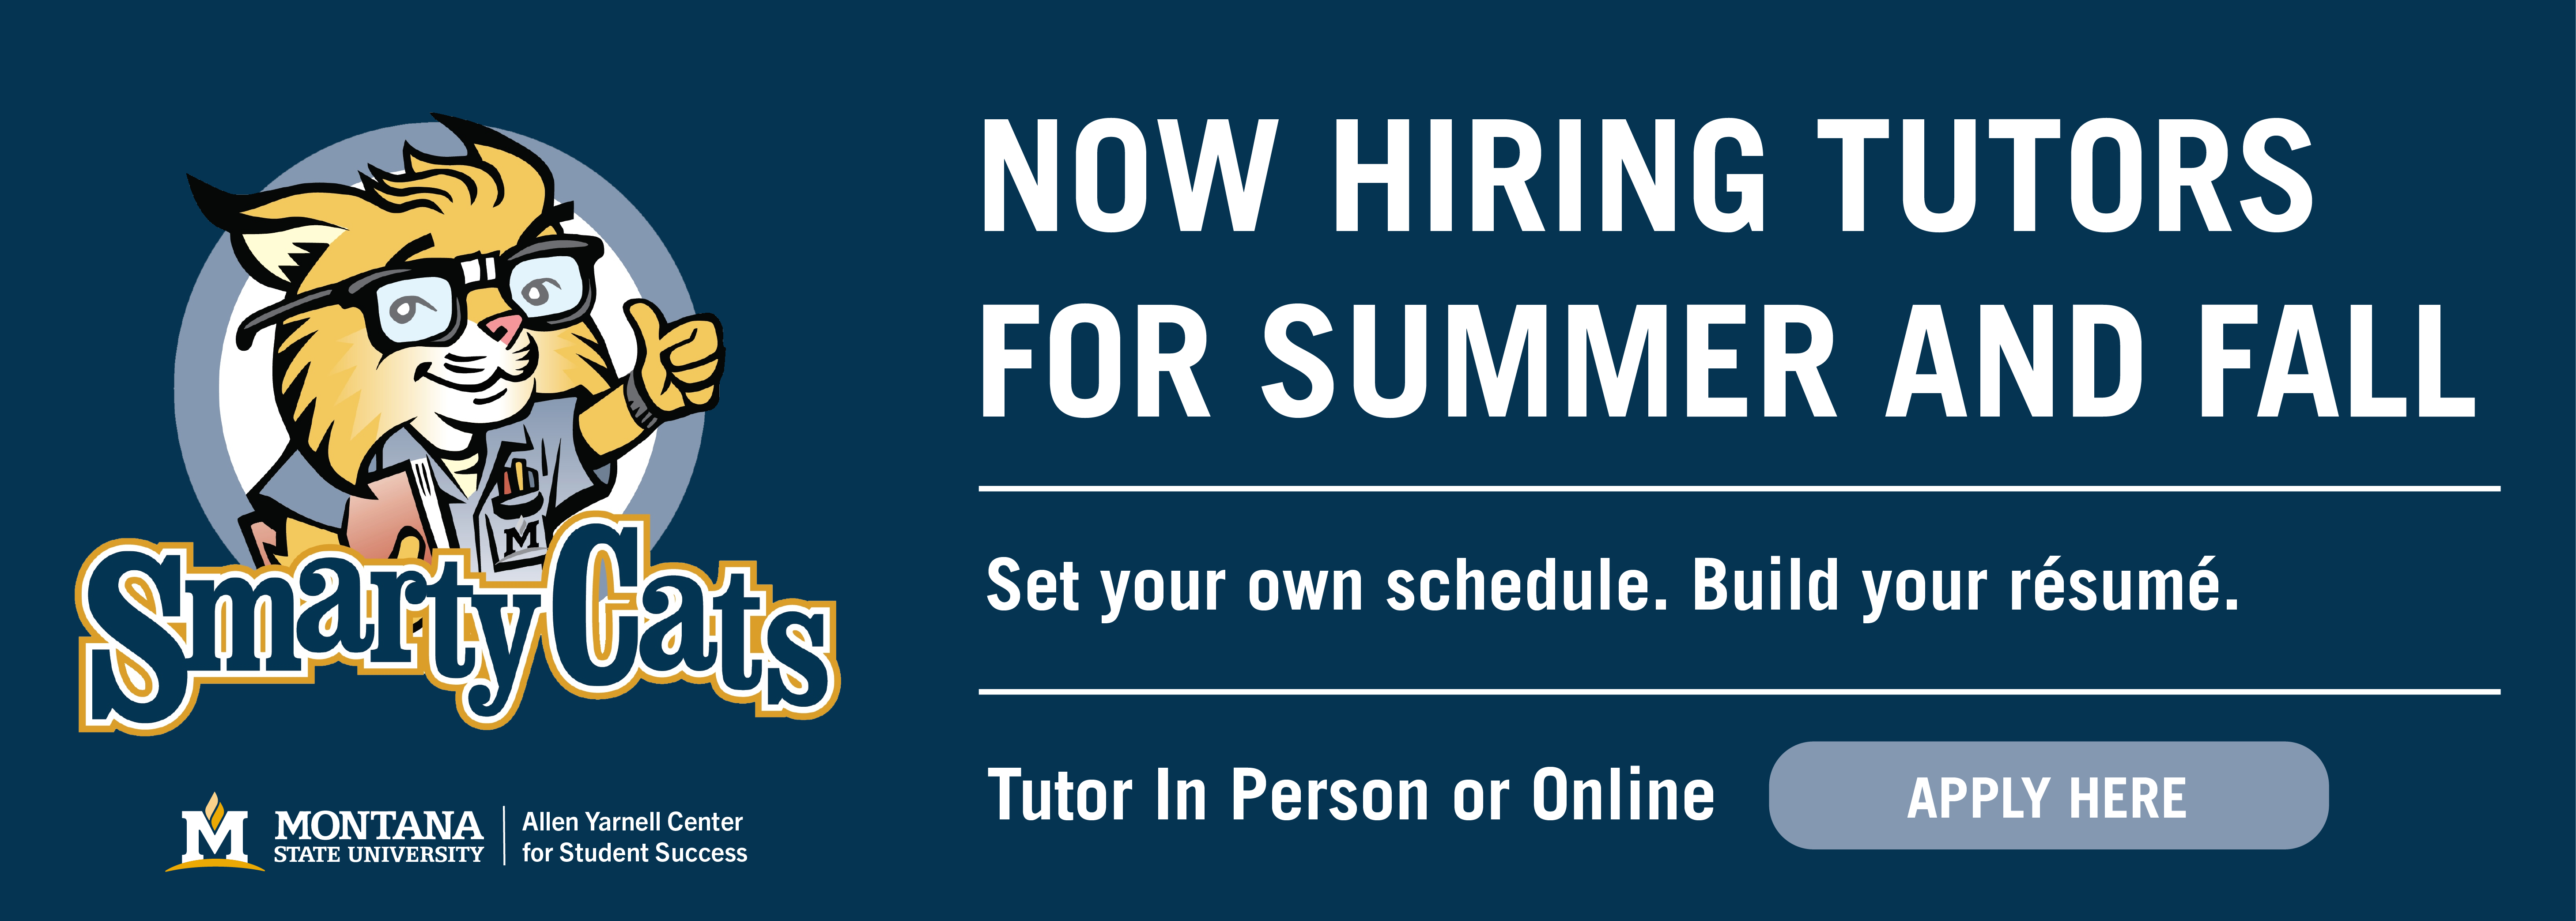 Now hiring tutors for summer and fall